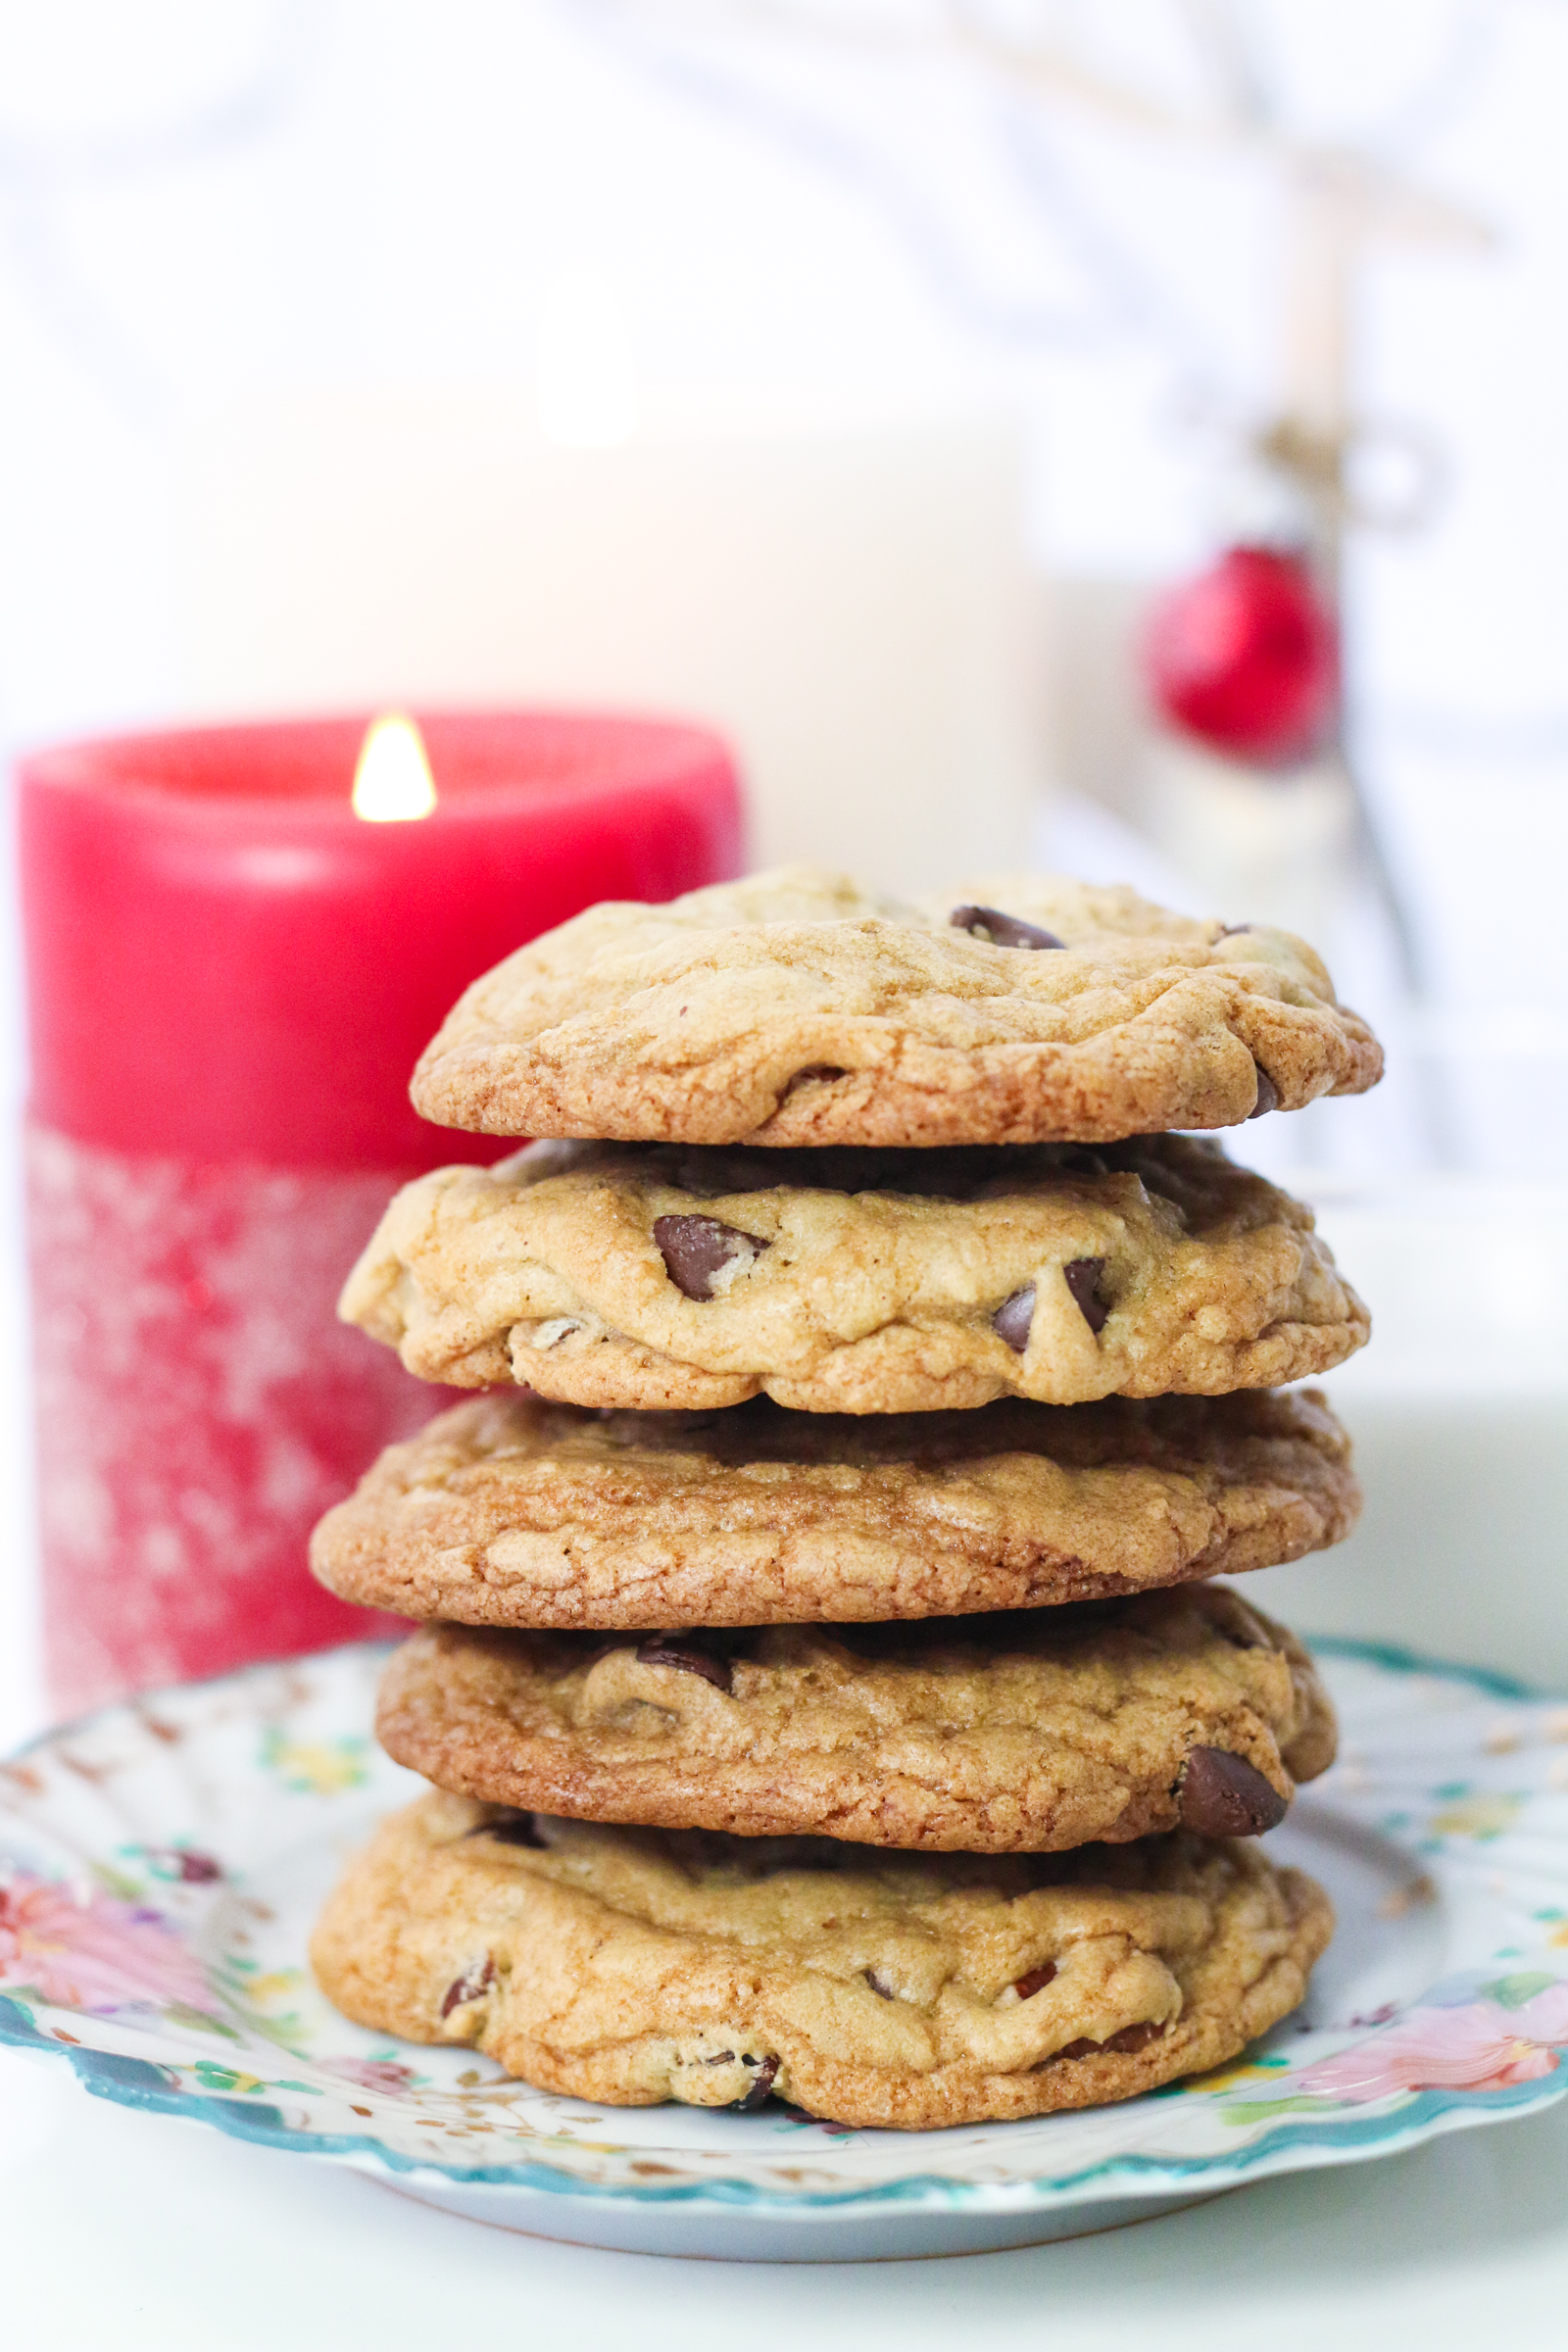 Chocolate Chip Pecan Cookies | ChefJulieYoon.com